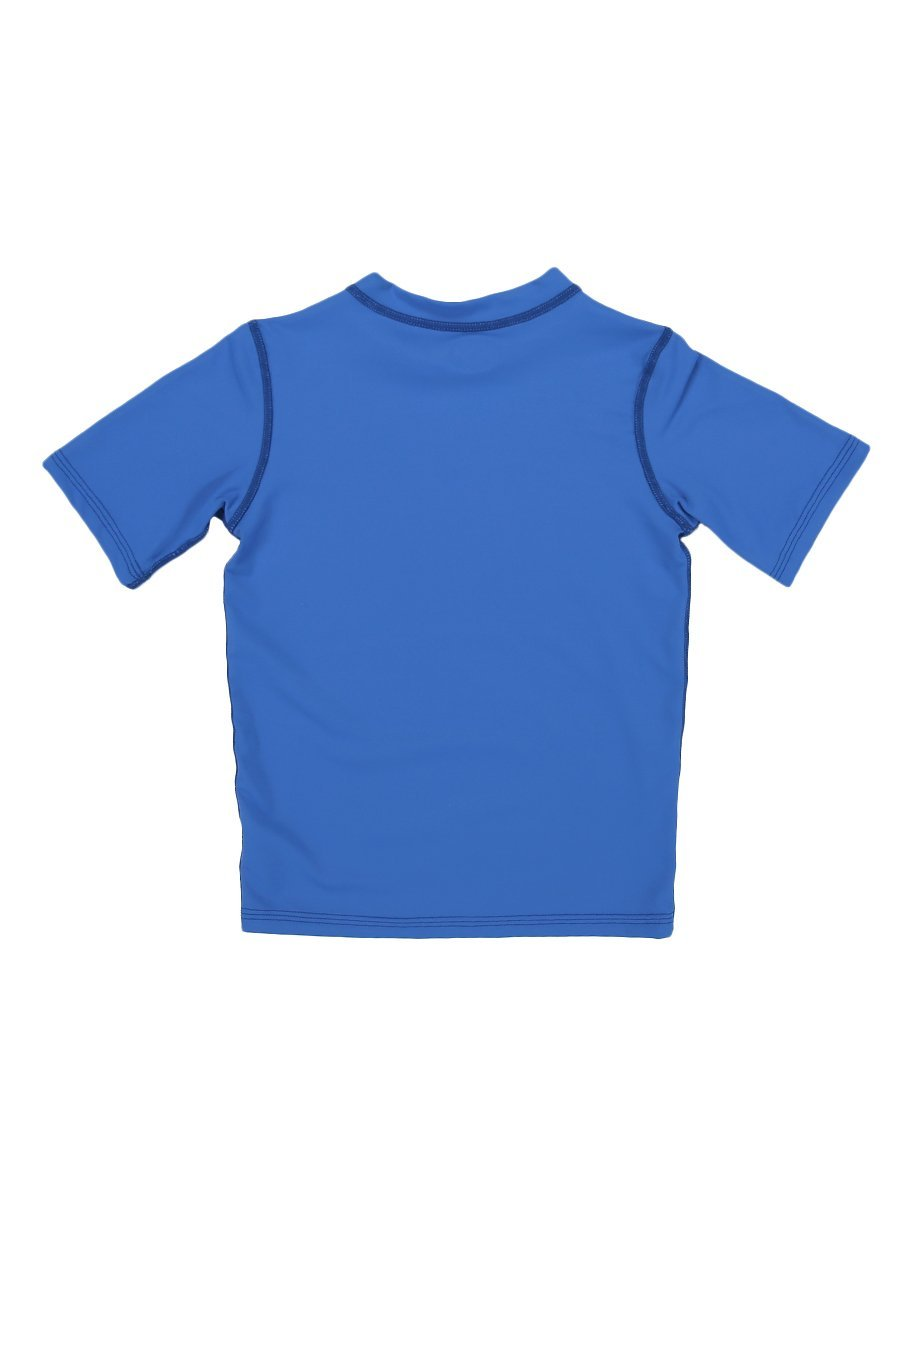 Kids Jaws S/S Rashguard - Royal